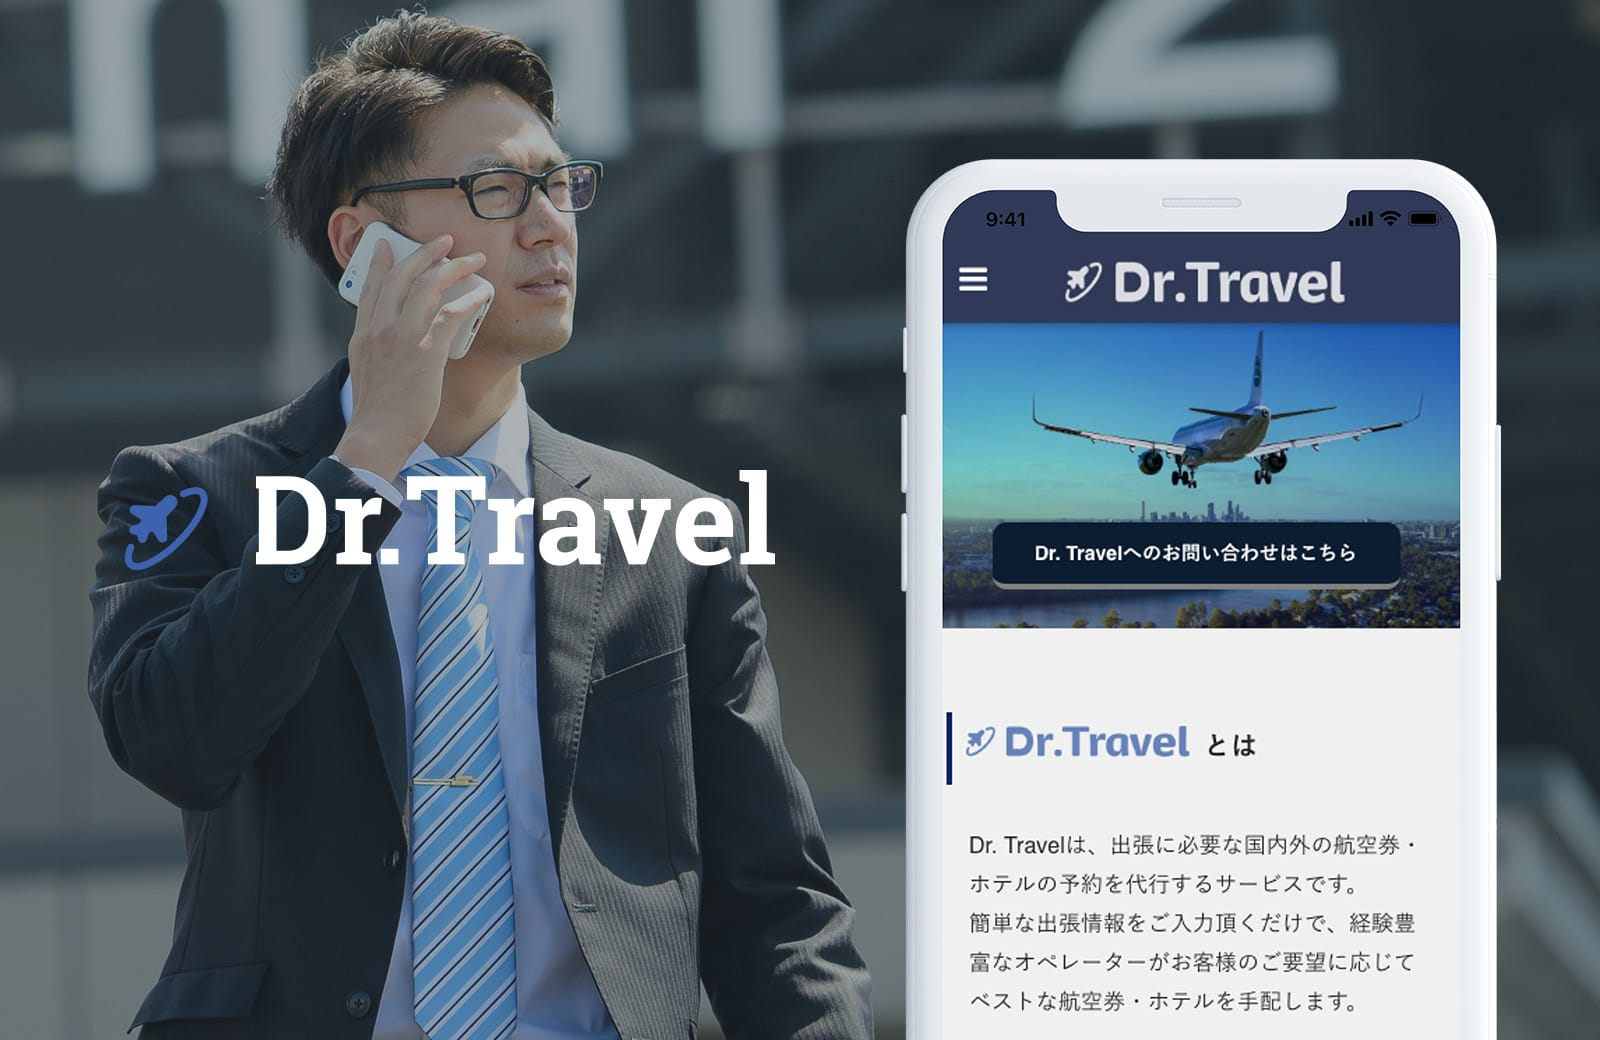 Dr.Travel